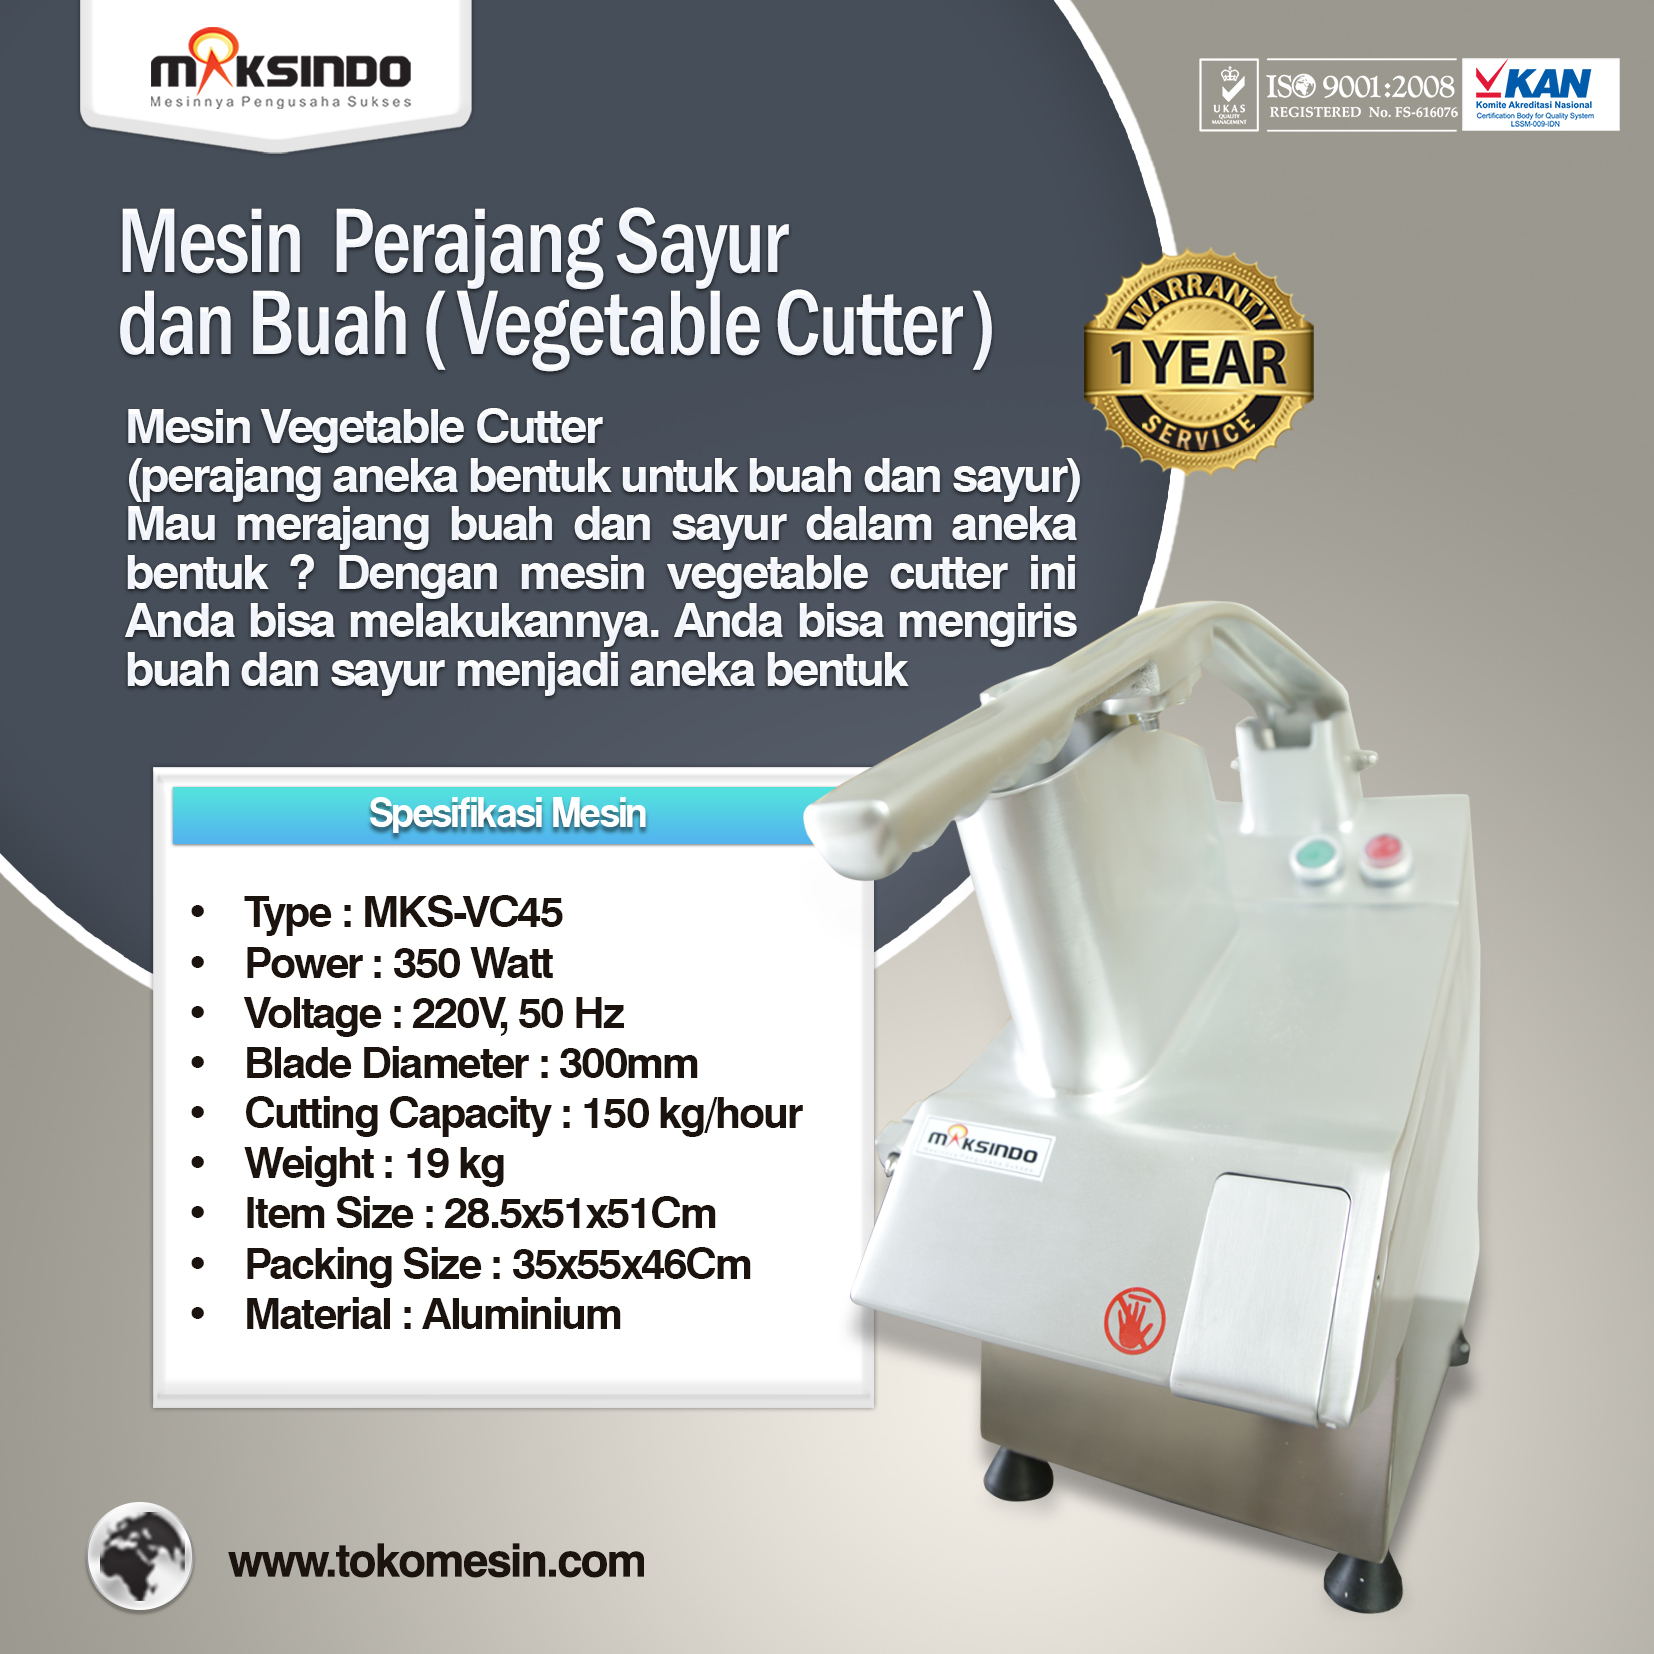 Mesin Vegetable Cutter MKS-VC45